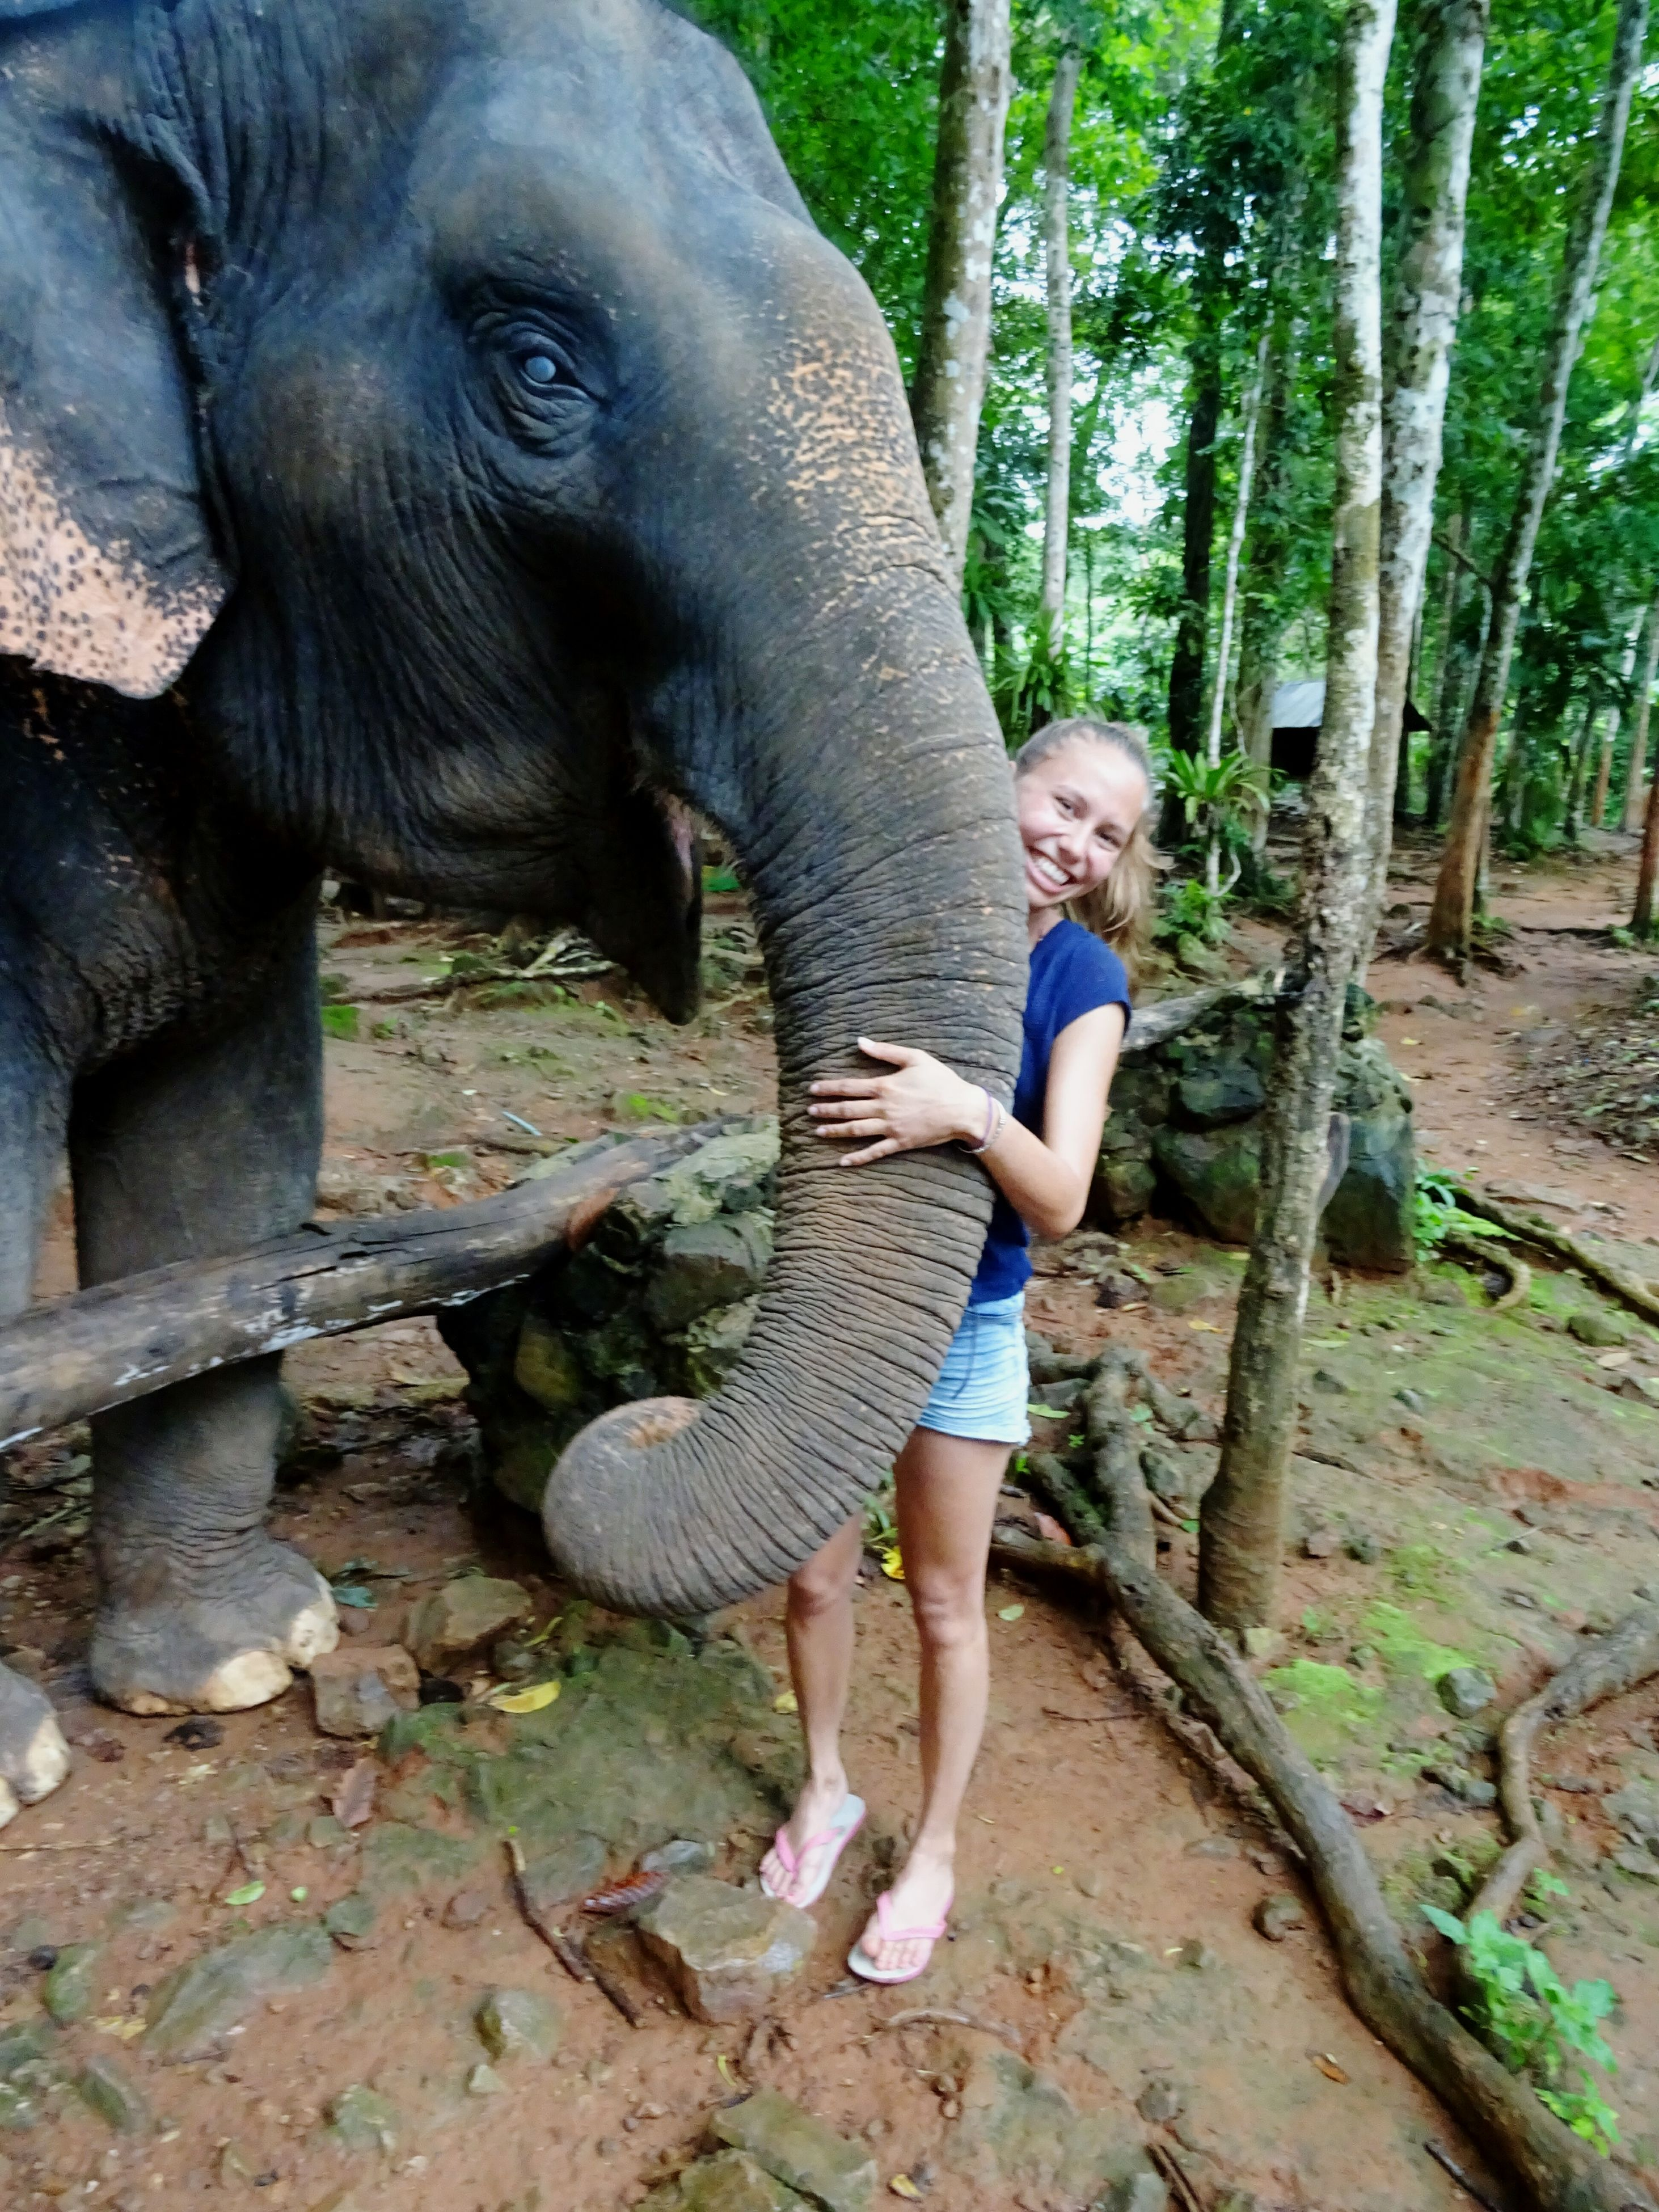 elephant, full length, child, indian elephant, animal, childhood, outdoors, day, people, one person, adult